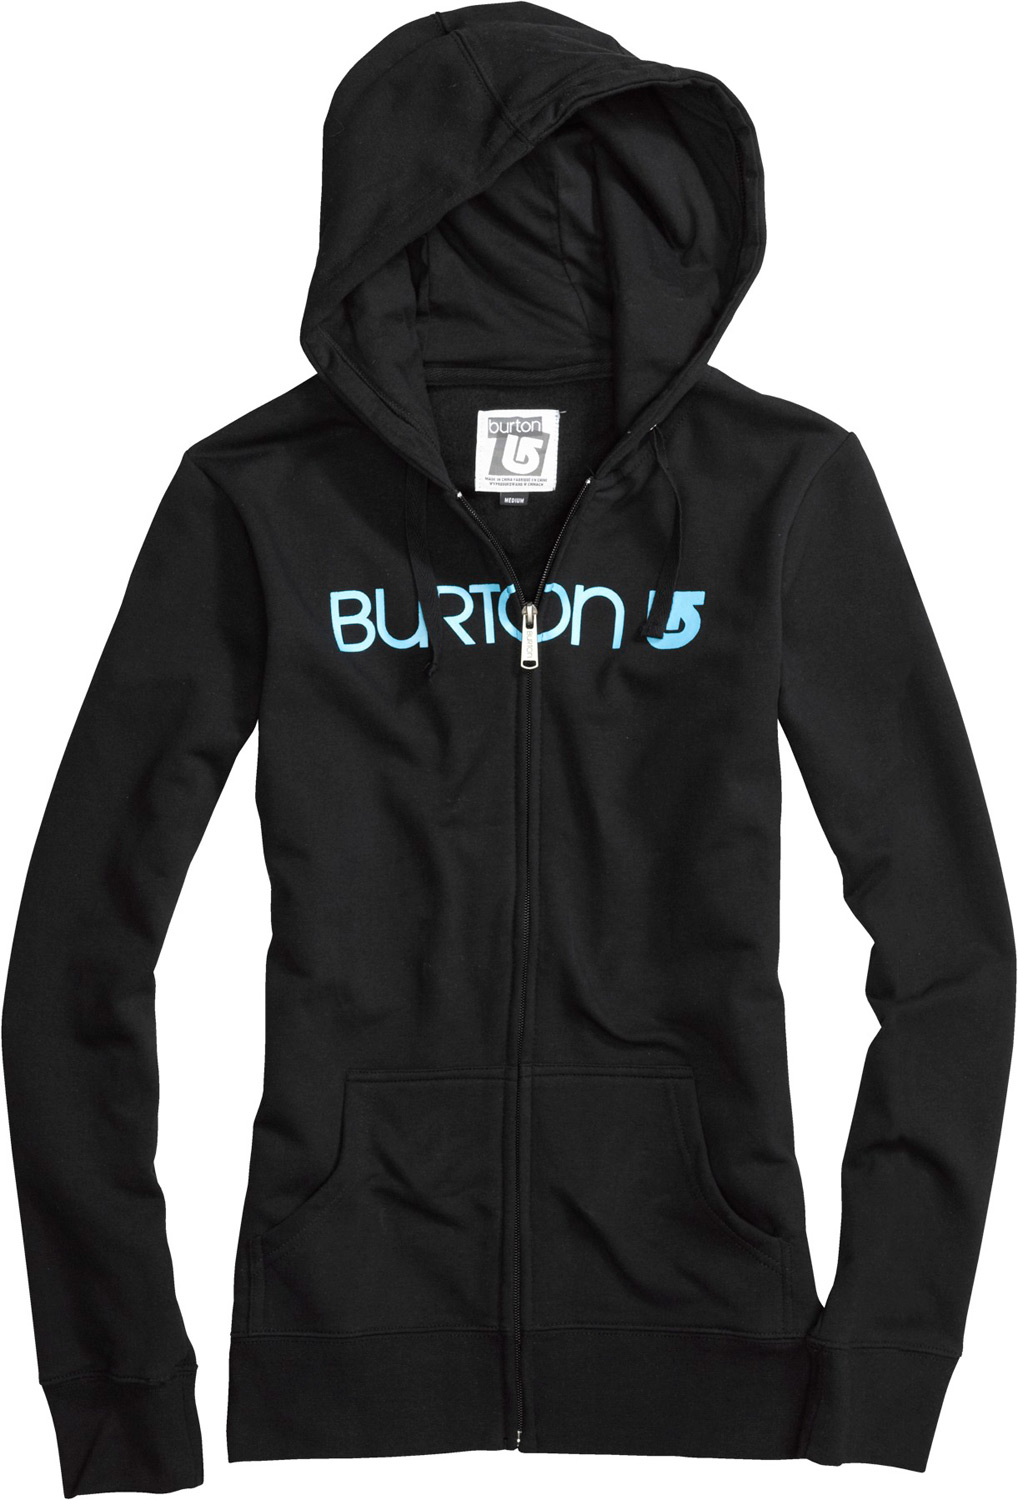 Snowboard Key Features of the Burton Her Logo Basic Fullzip Hoodie: 85% Cotton, 12% Polyester, 3% Spandex, 280G Fleece Screen Print at Chest Regular Fit - $34.95